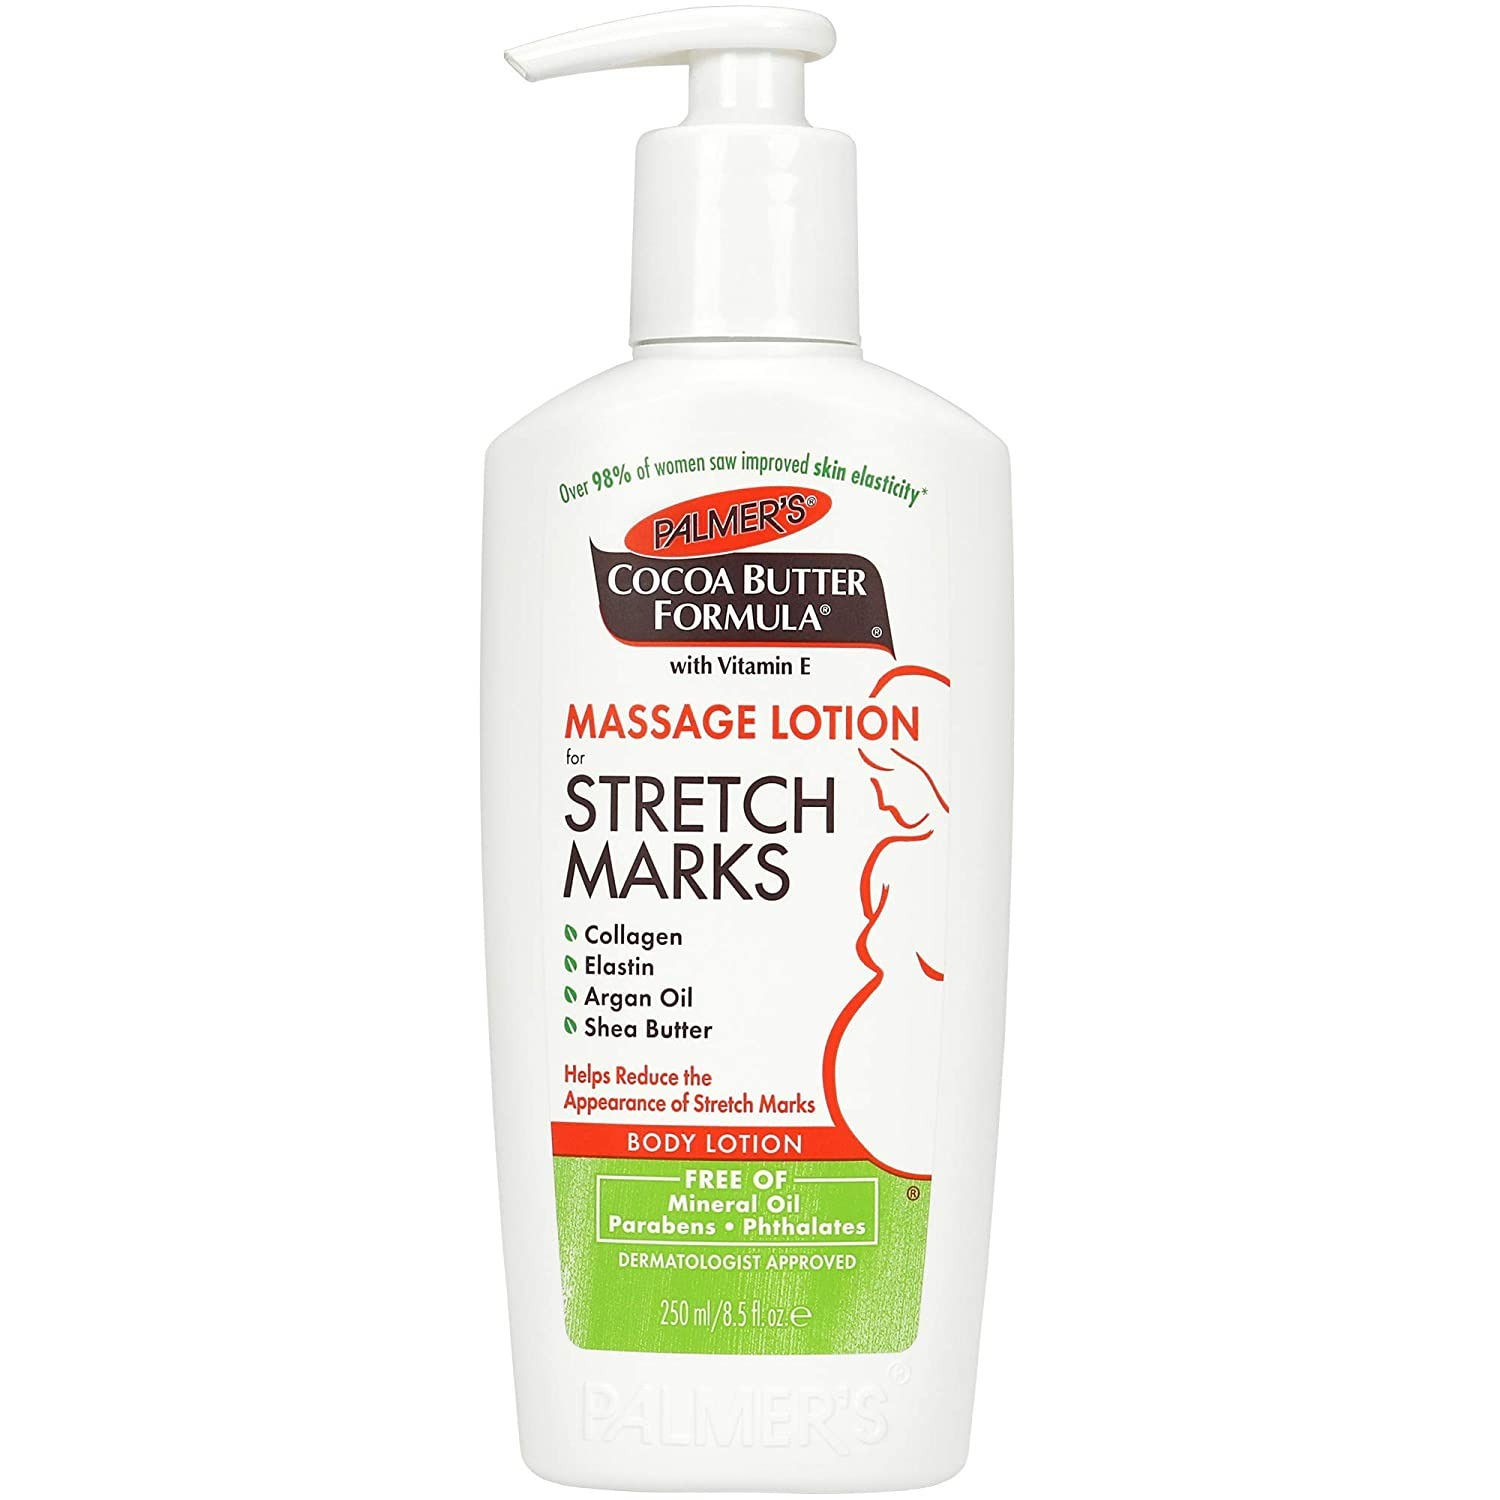 SỮA DƯỠNG CHỐNG RẠN DA PALMER'S COCOA BUTTER FORMULA MASSAGE LOTION FOR STRETCH MARKS, PREGNANCY SKIN CARE